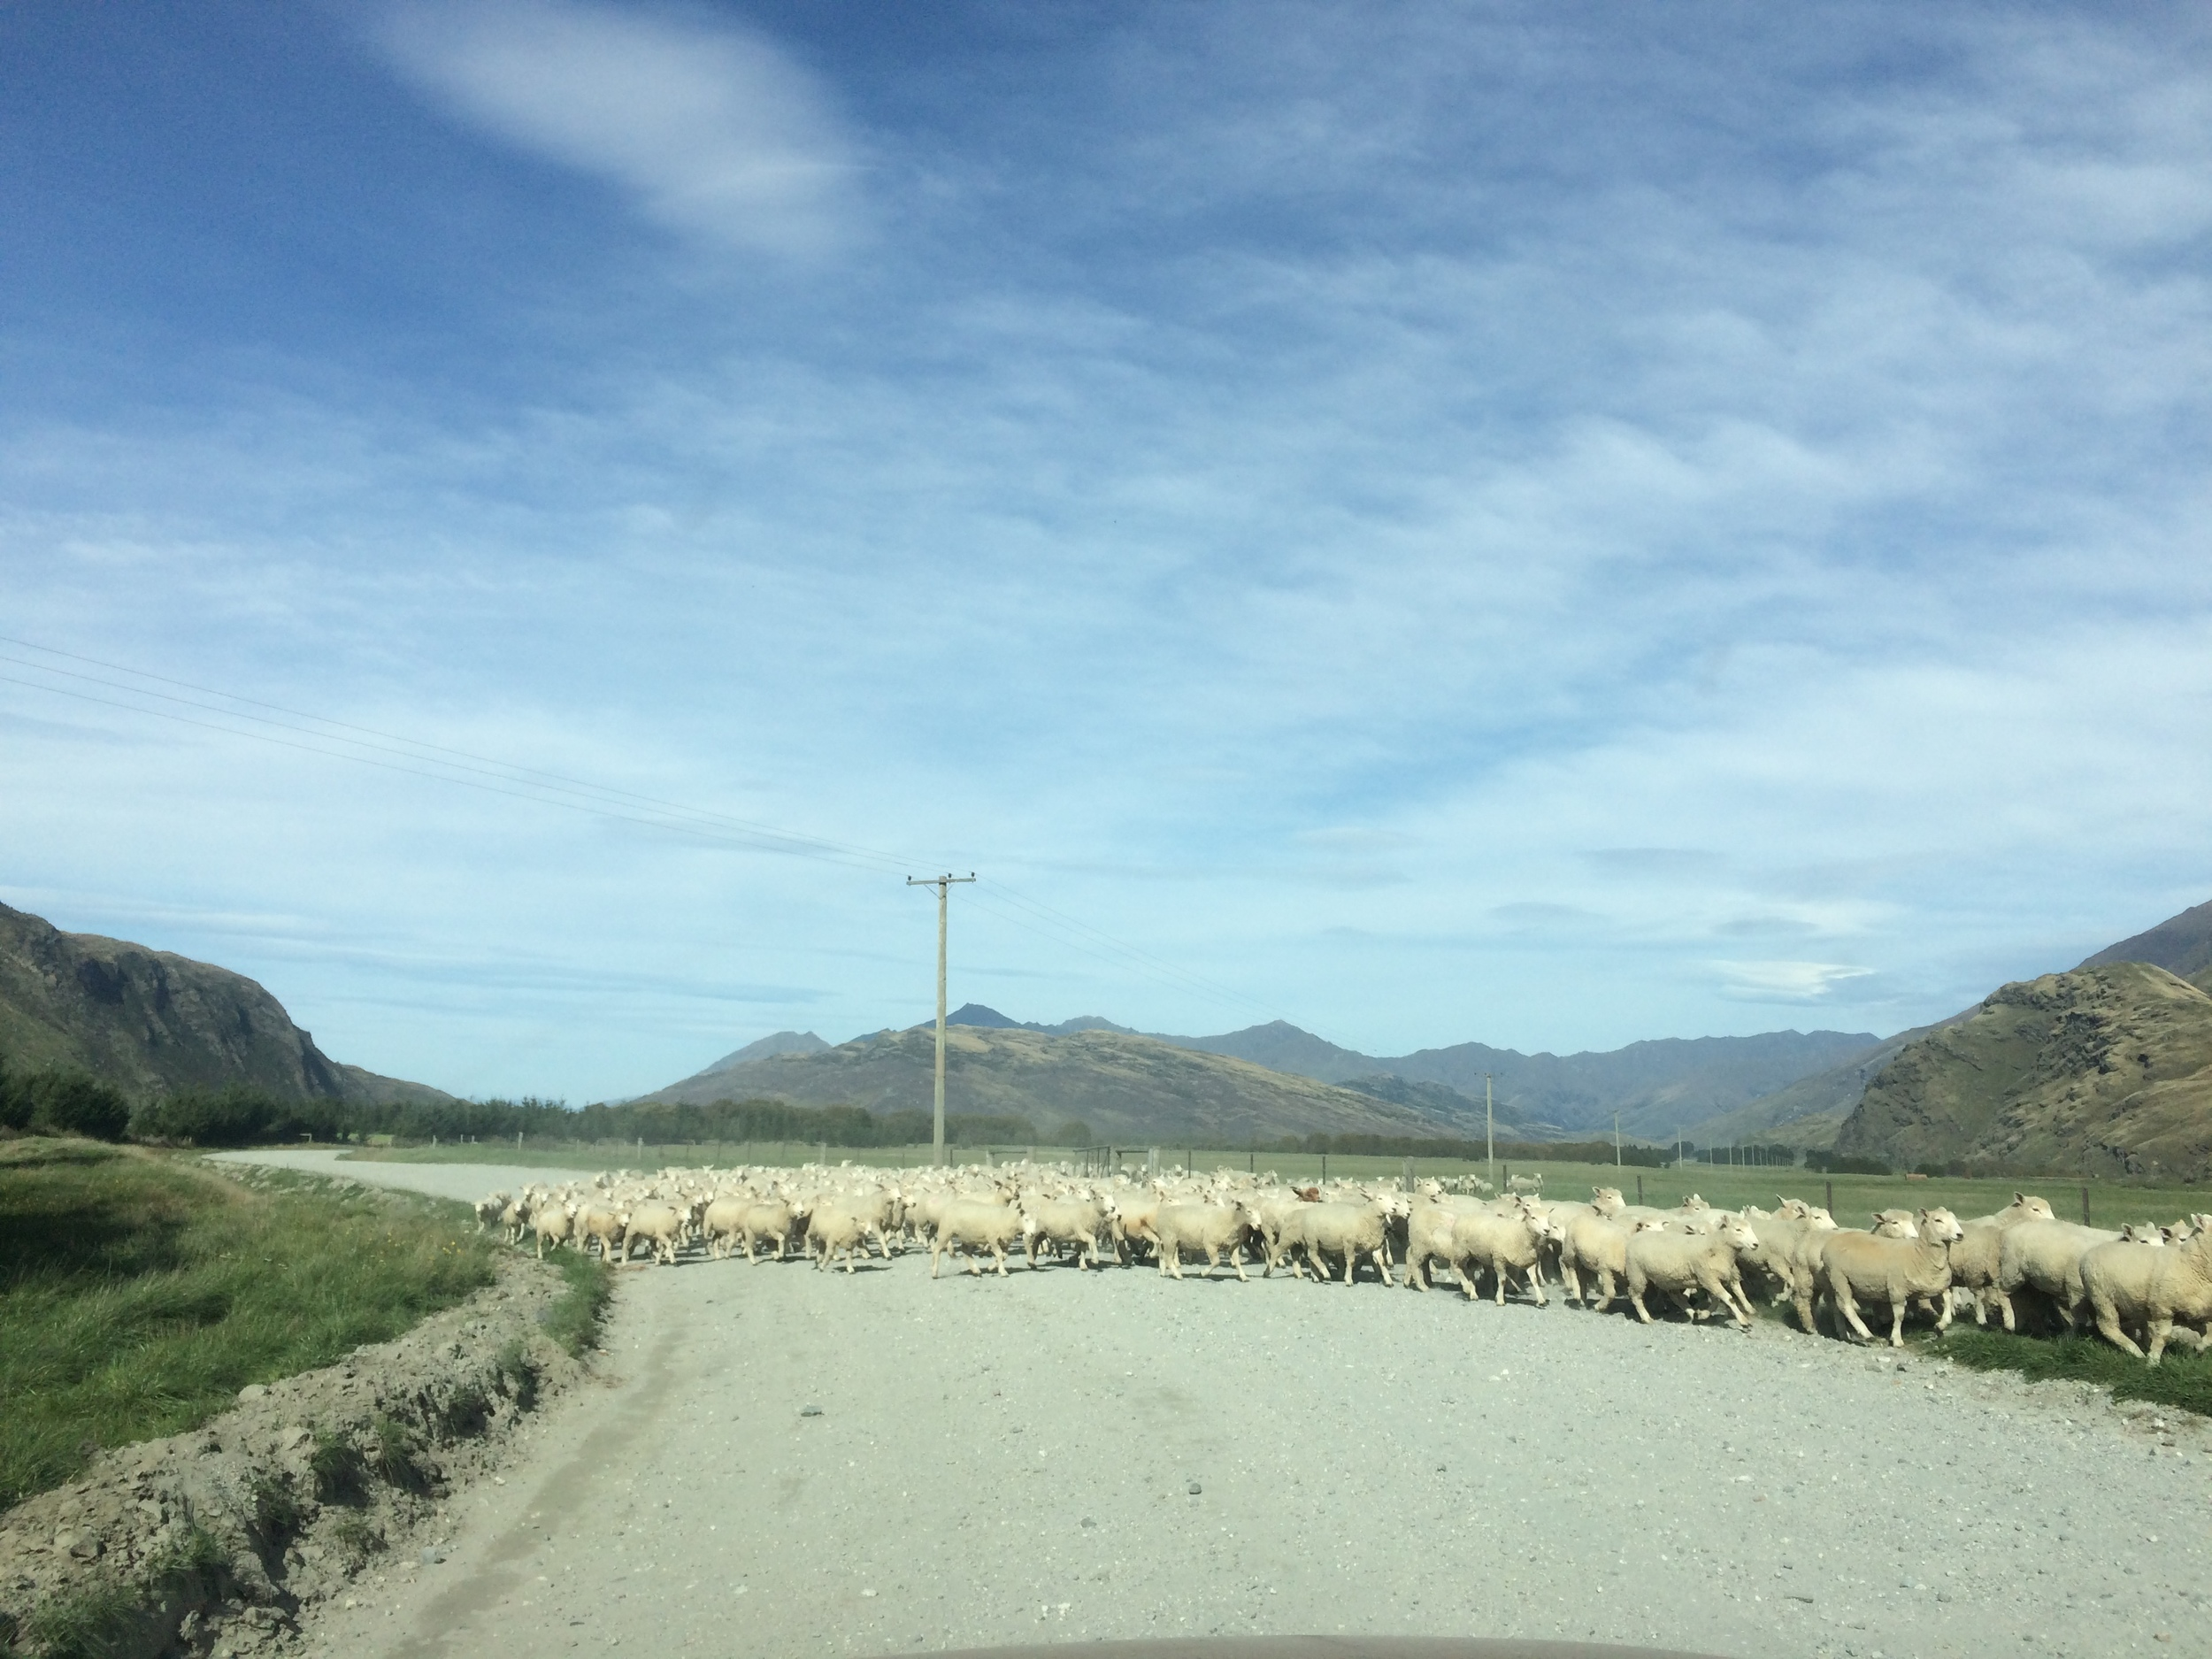 You can't forget about the sheep in New Zealand, they are everywhere!